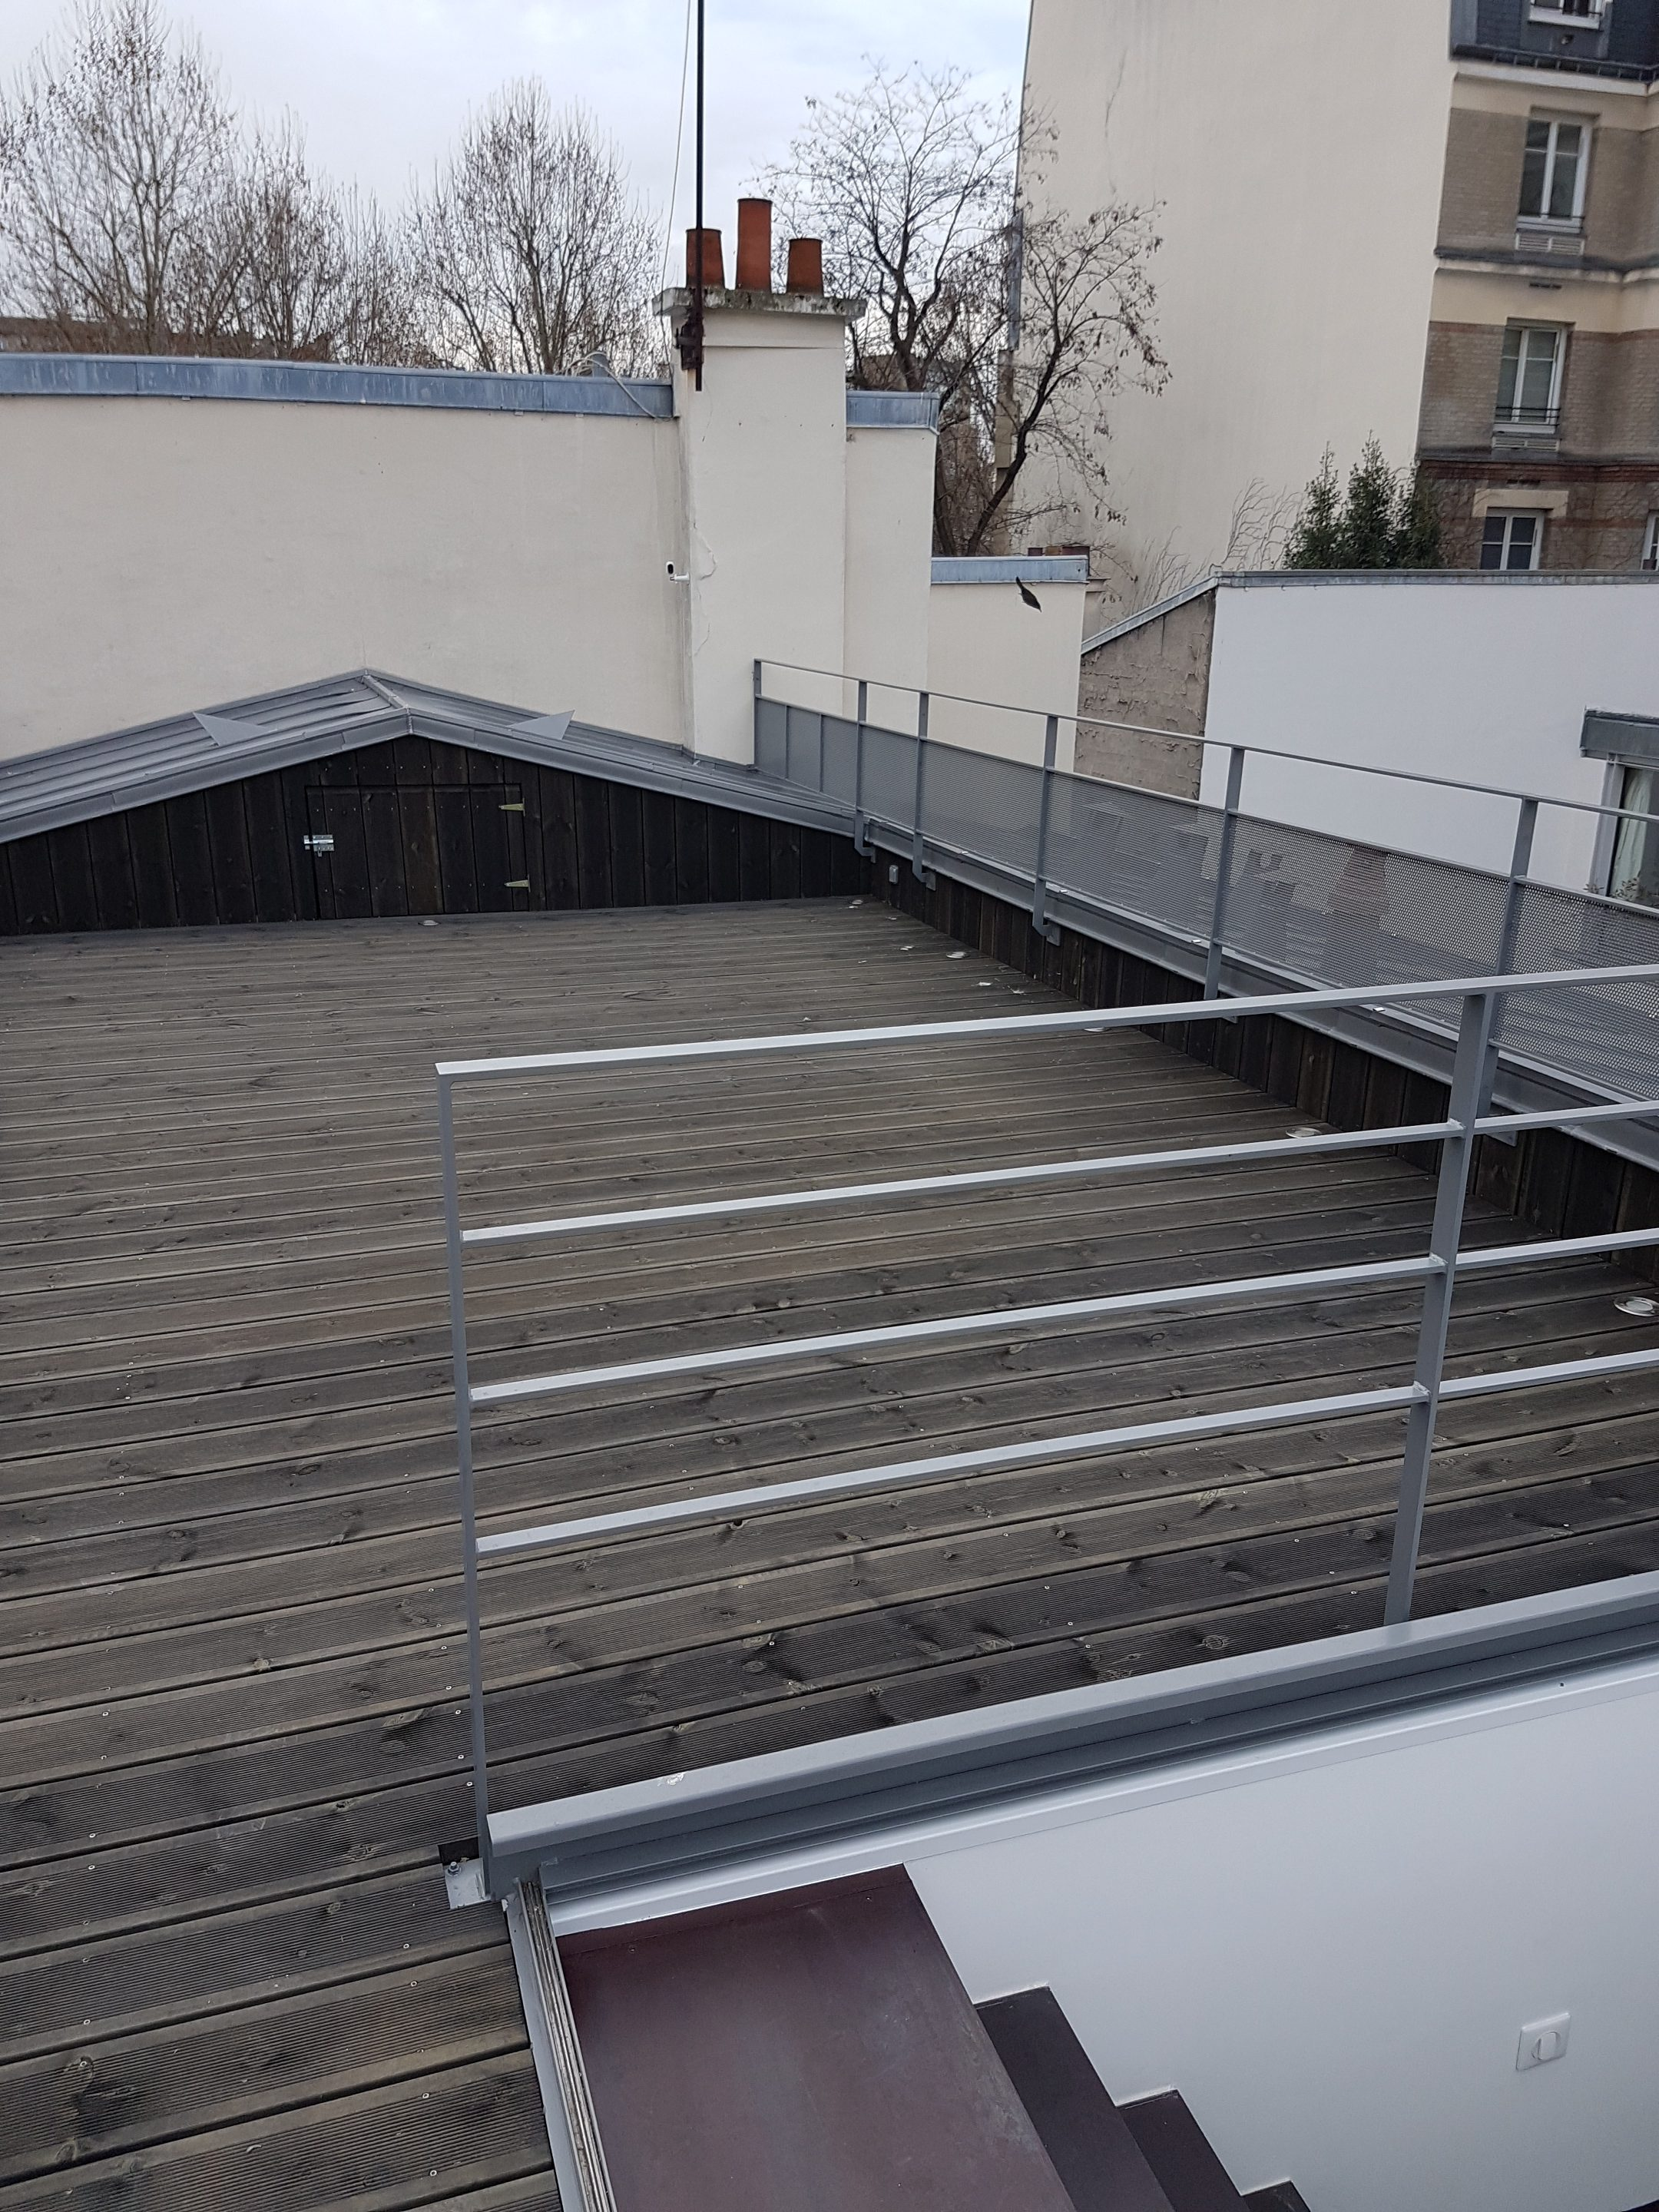 Creation D Une Terrasse Sur Le Toit D Un Immeuble Parisien Paris 18eme Abd Interior S Paris